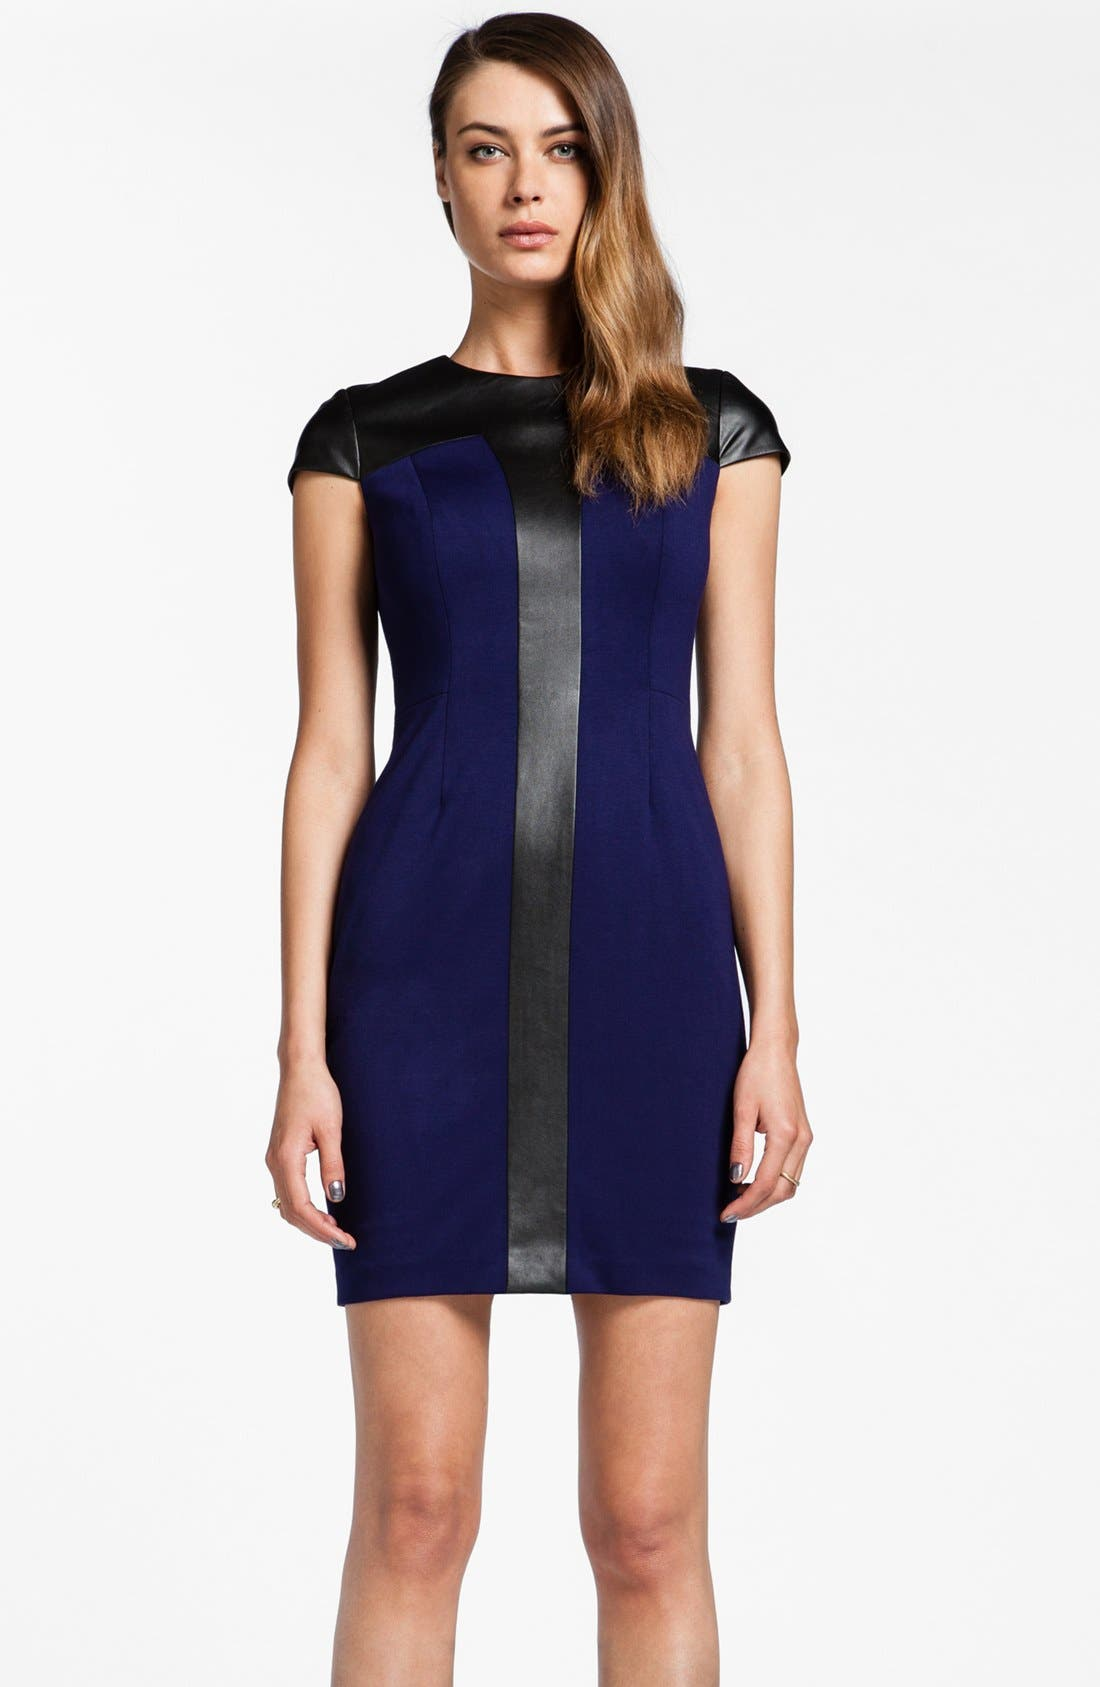 Alternate Image 1 Selected - Cynthia Steffe 'Pandora' Faux Leather Trim Sheath Dress